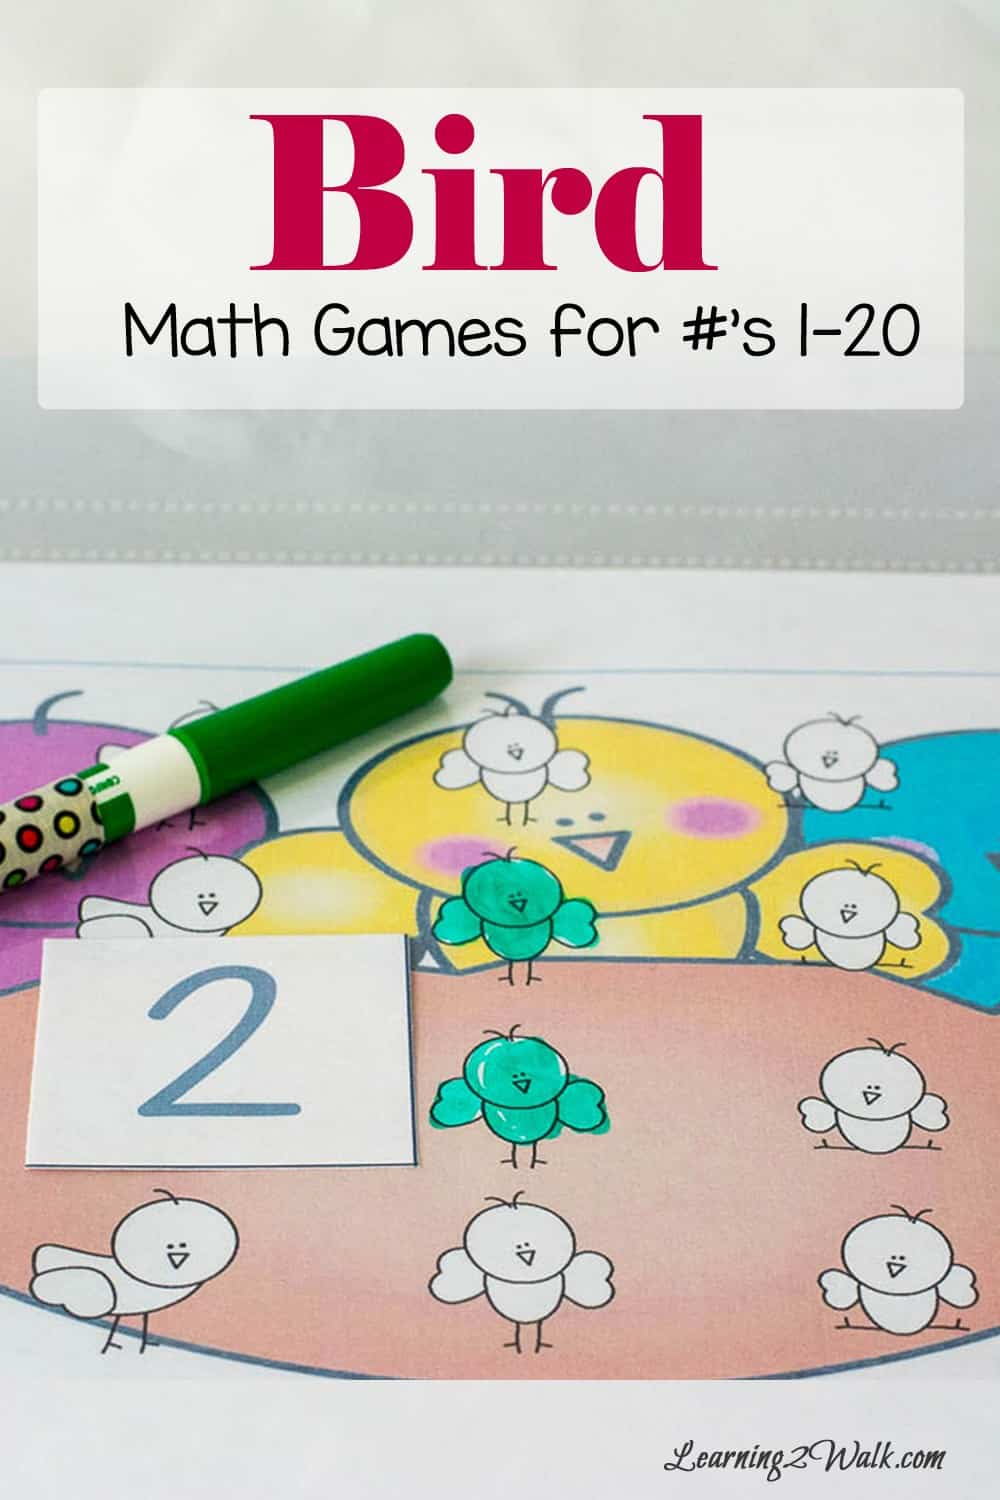 Who knew that using a dry erase marker, a few number cards and a bird theme could be the perfect combo for our bird math games? We had so much fun working on counting